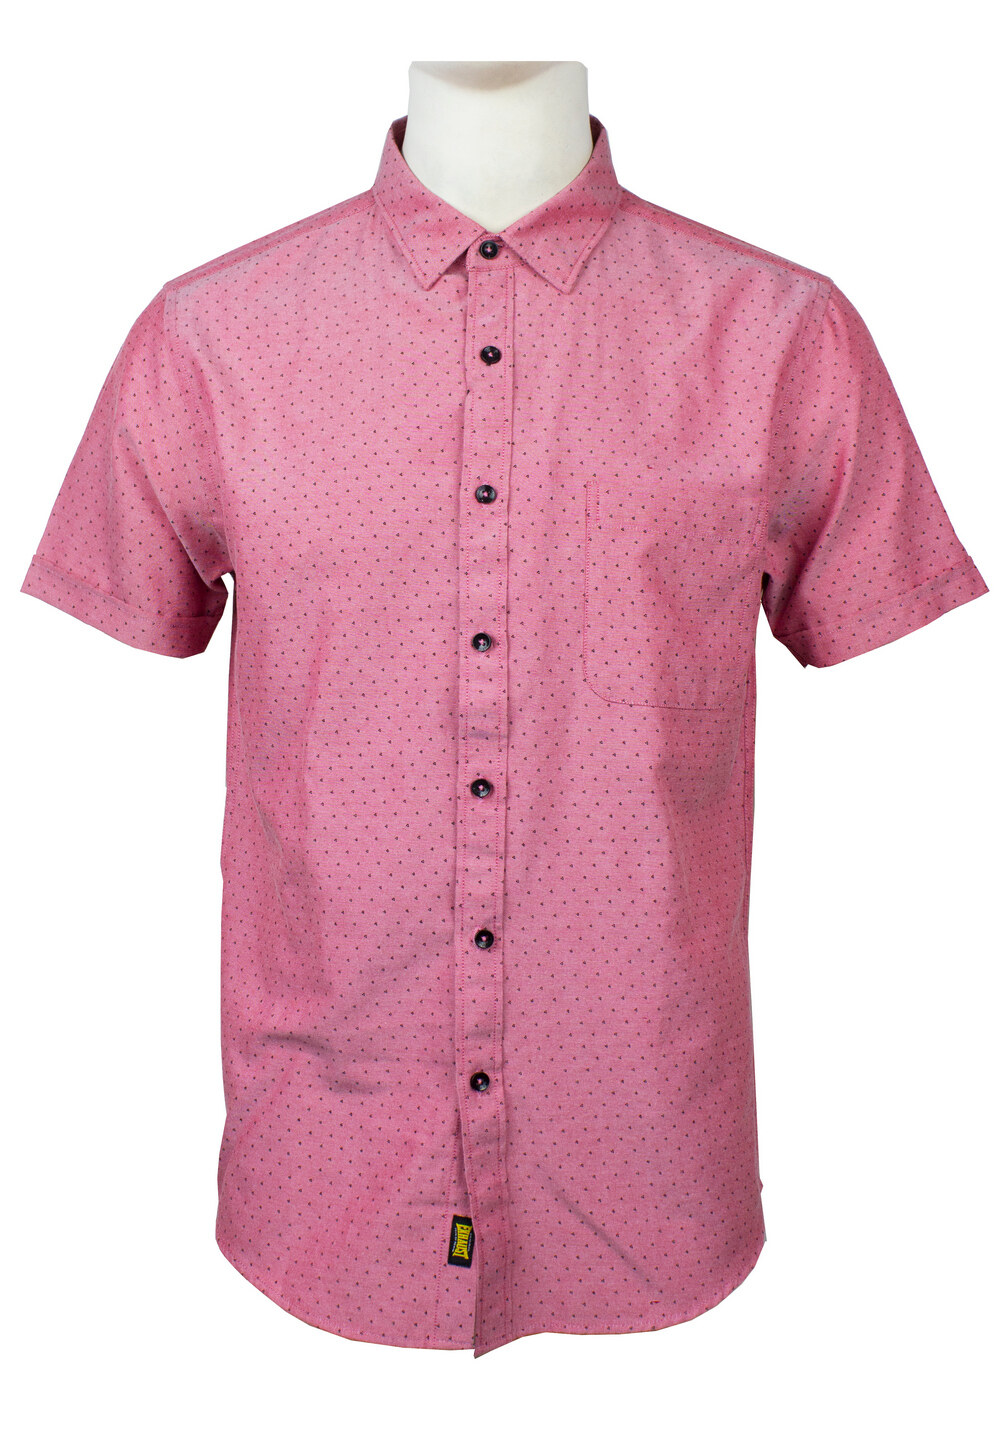 Men's Printed Short Sleeve Shirt 851